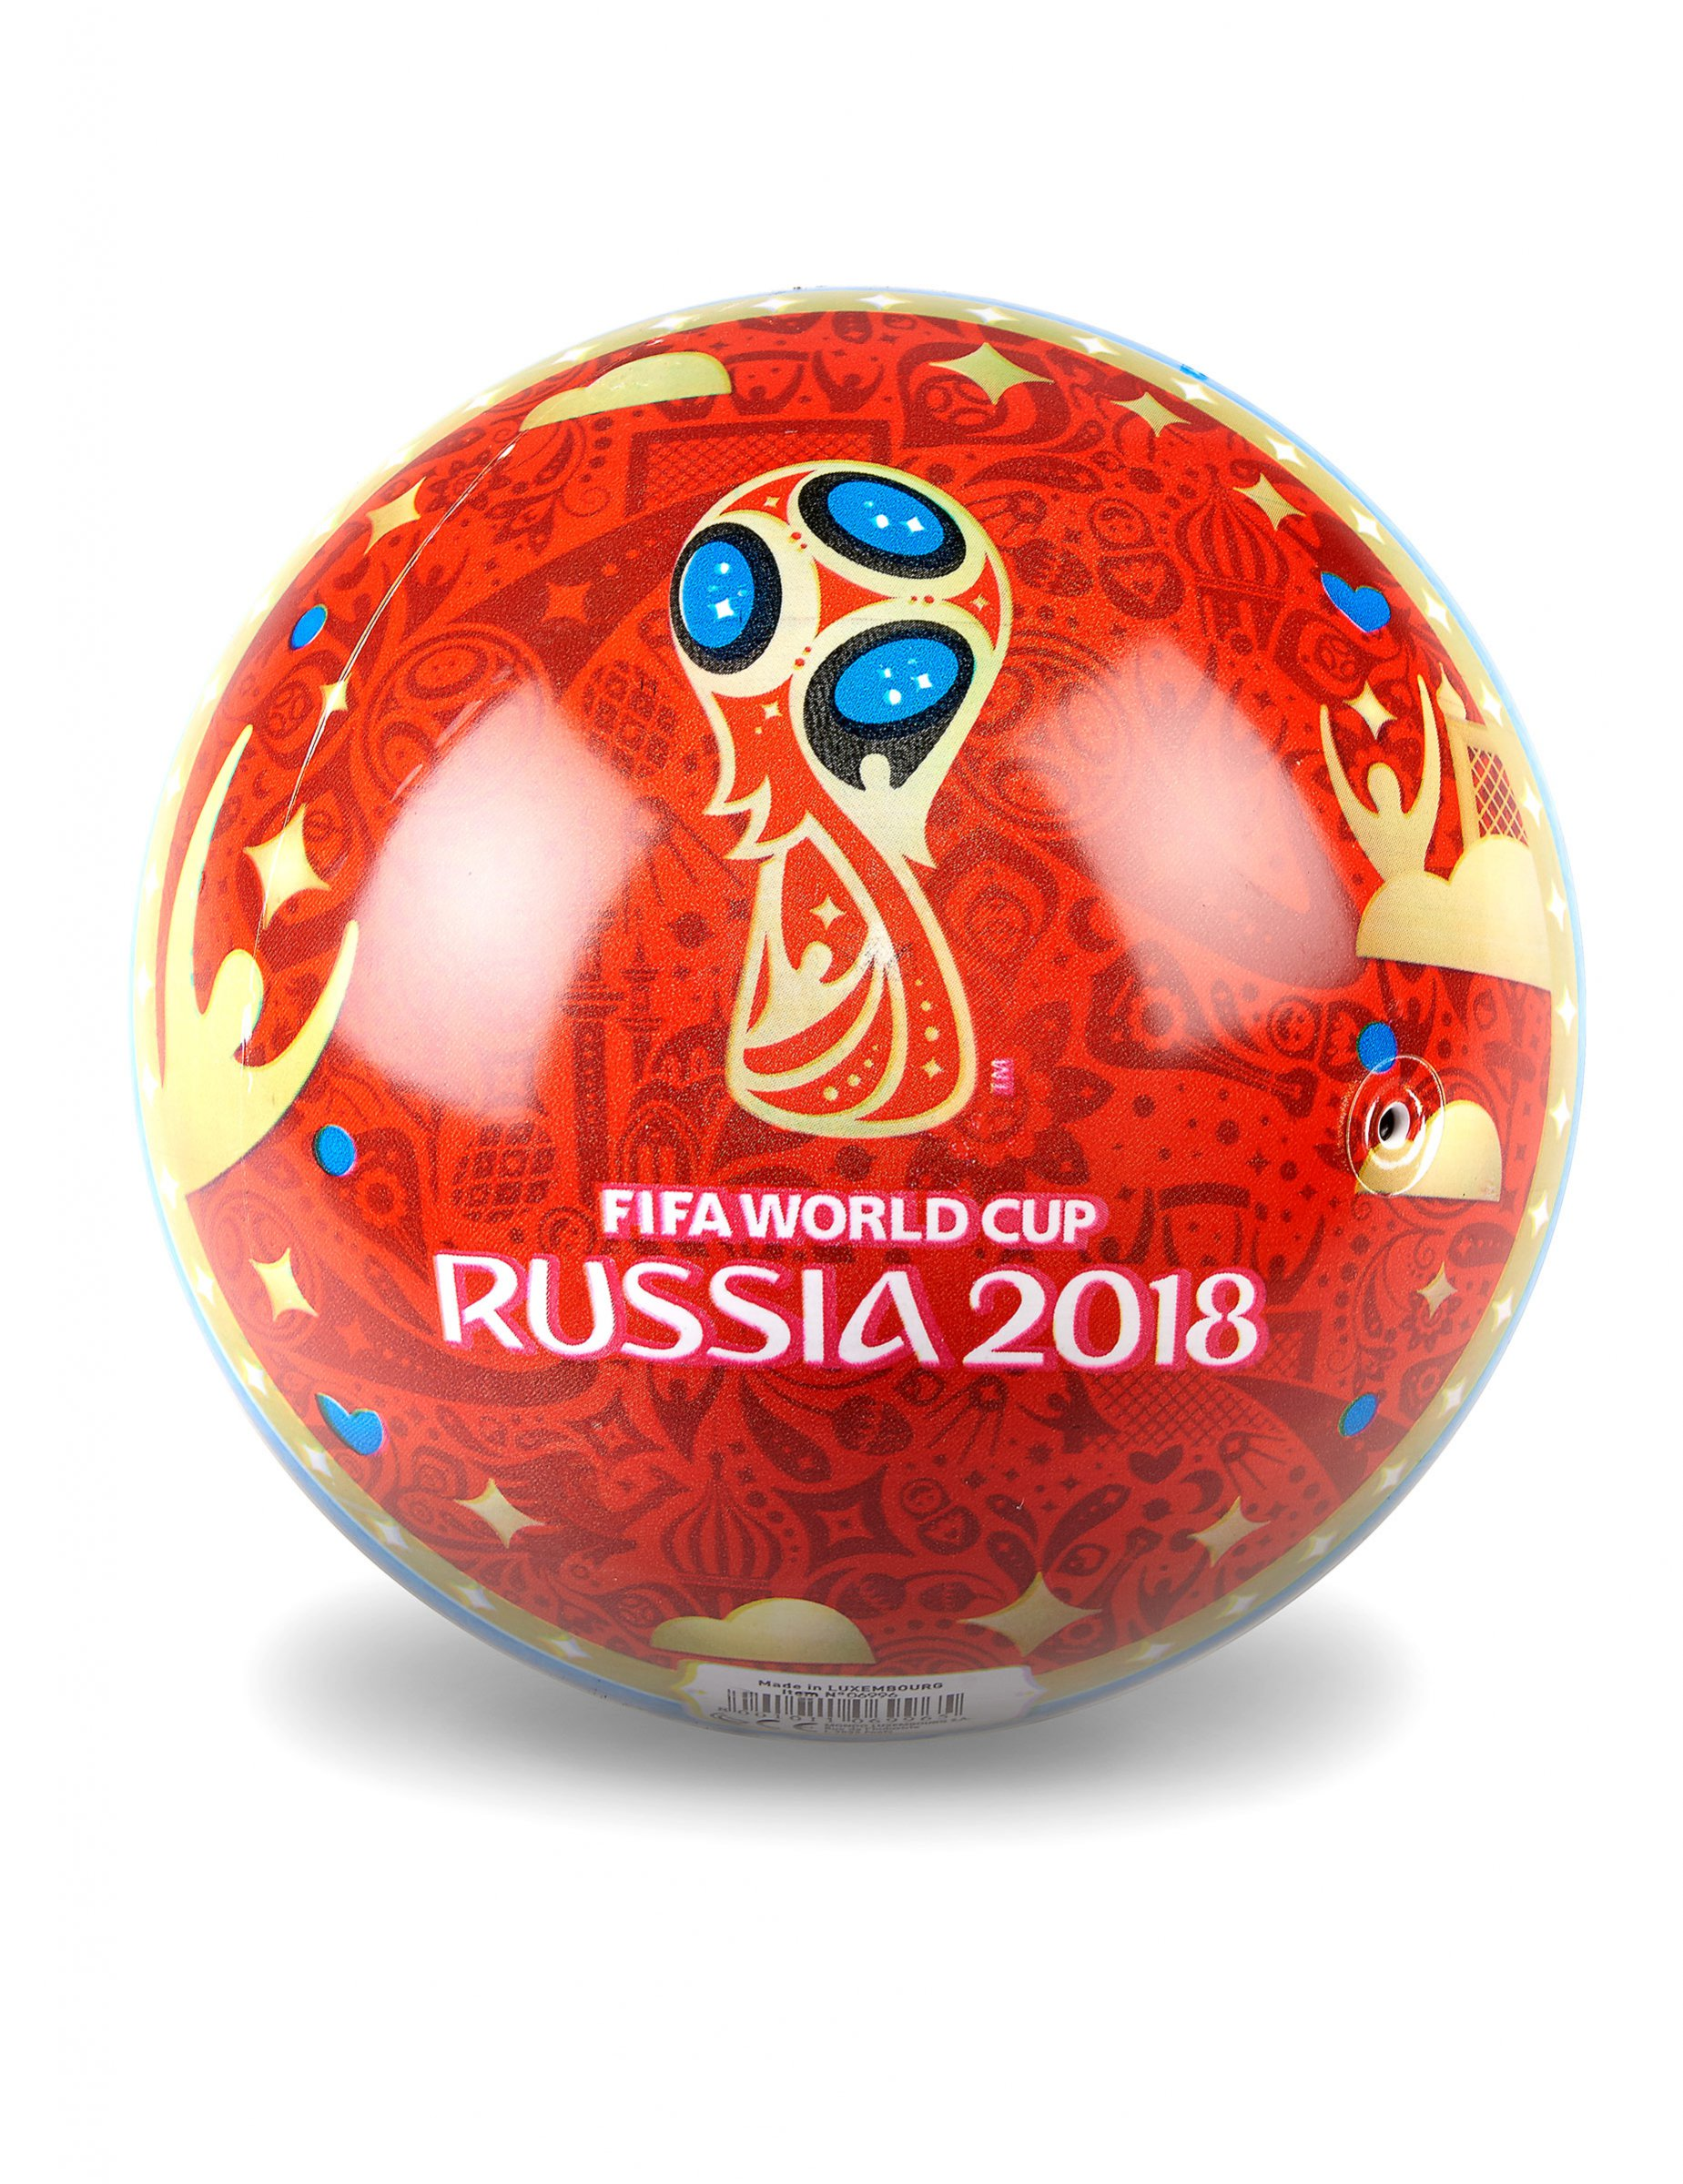 Ballon football coupe du monde 2018 d coration anniversaire et f tes th me sur vegaoo party - Coupe du monde 2018 football ...